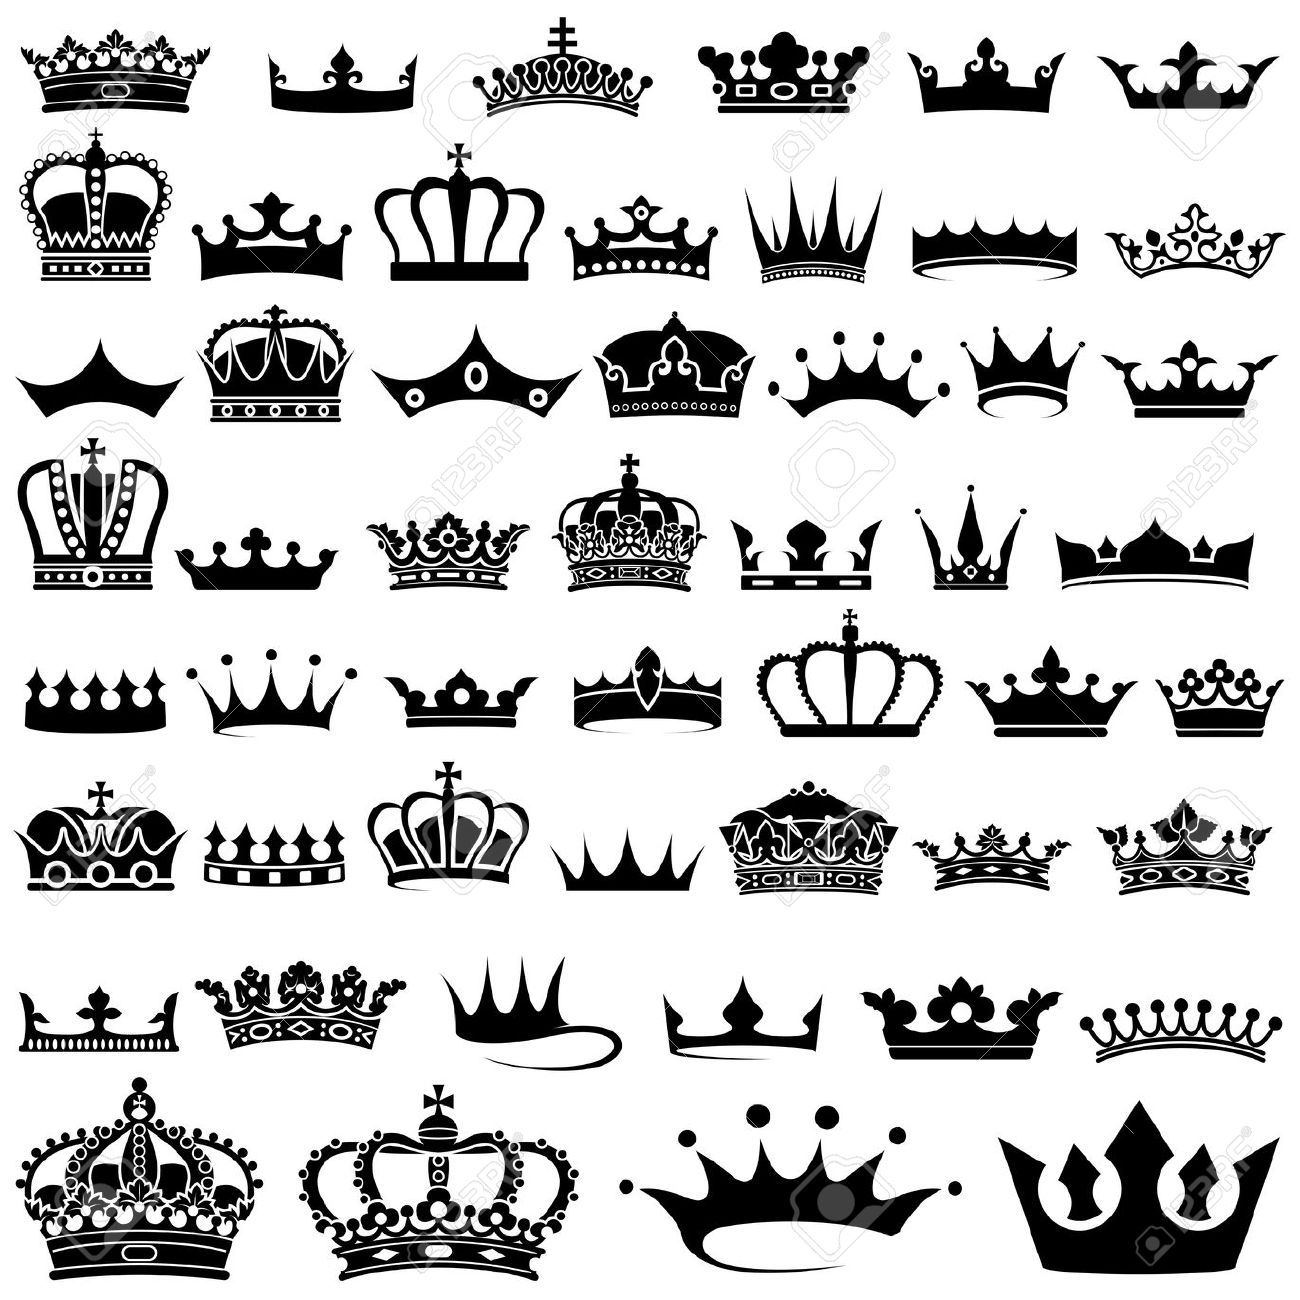 crown design set 50 illustrations vector stock vector